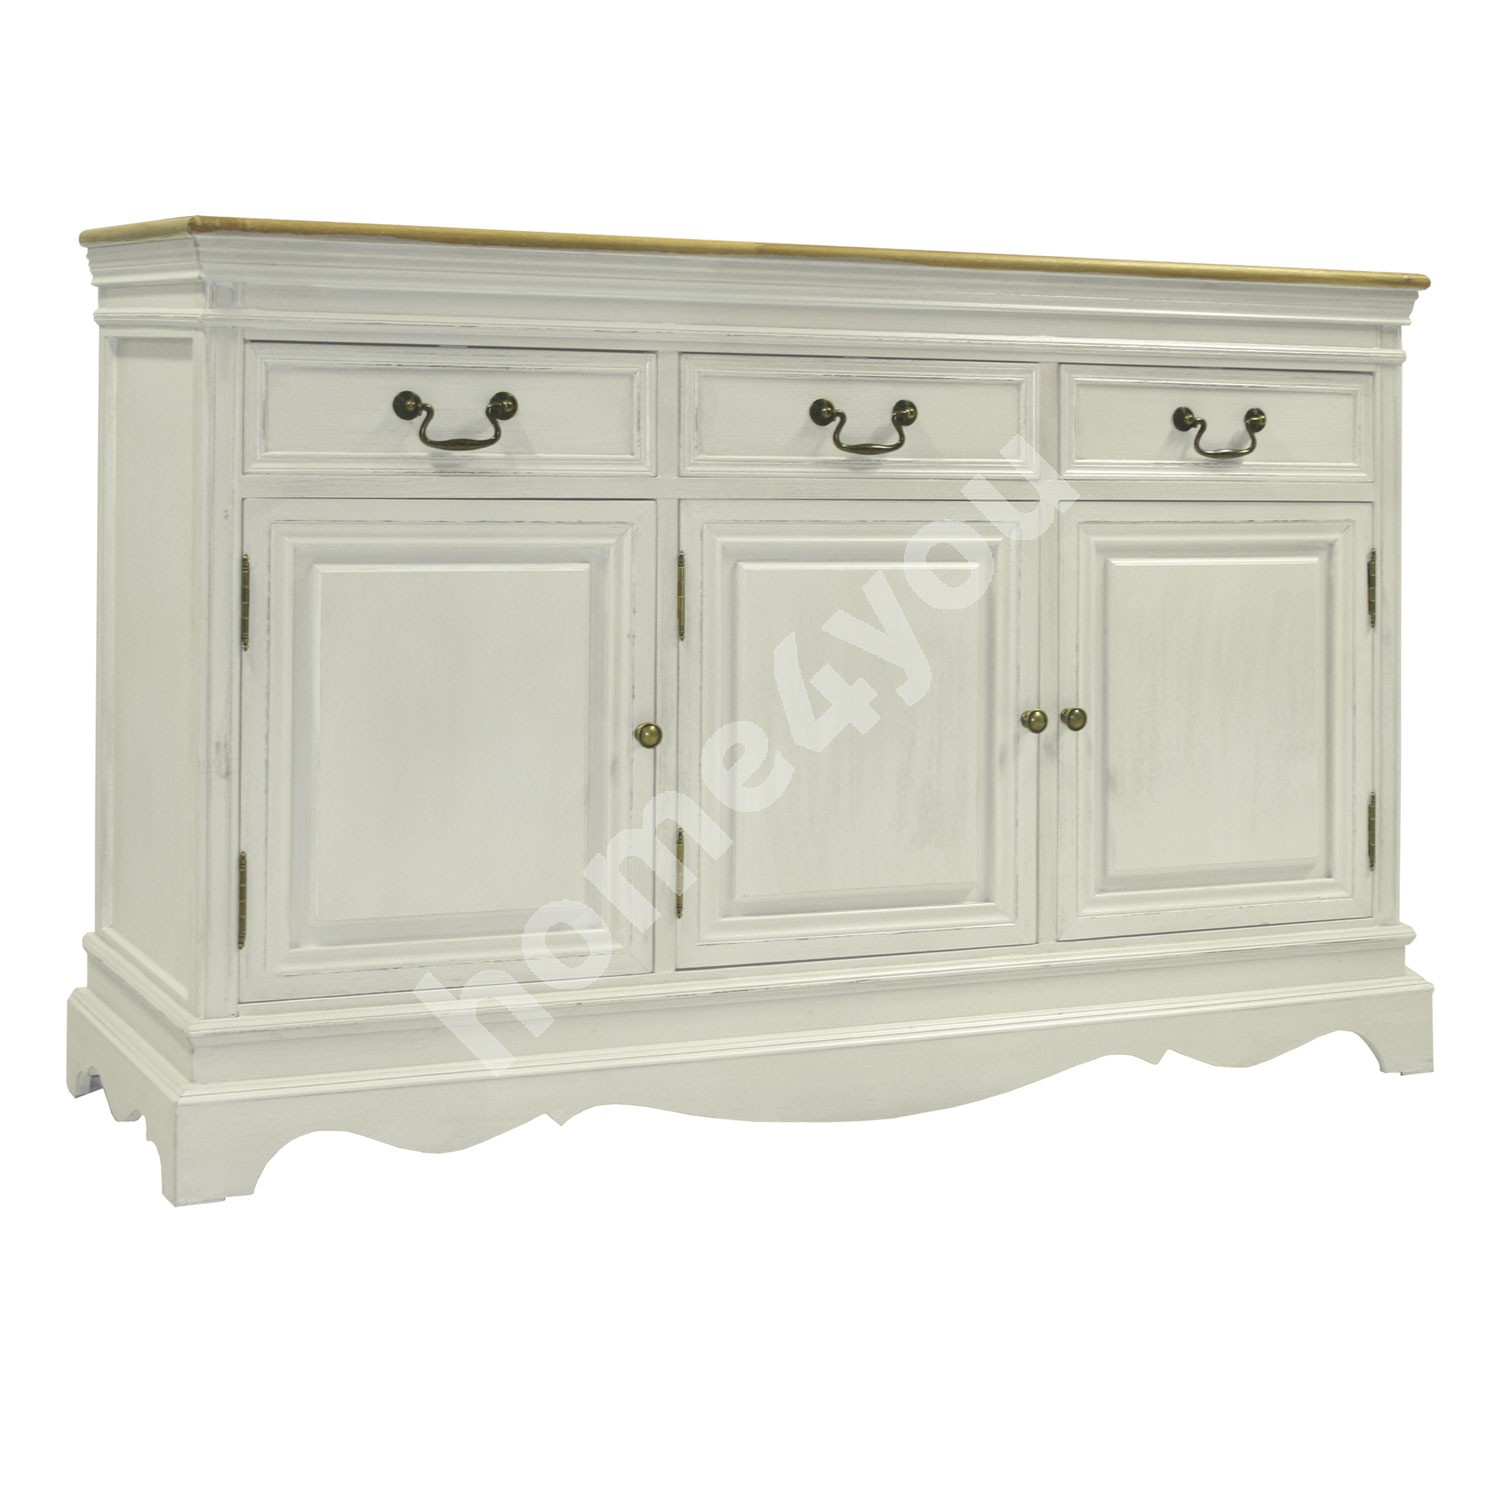 Sideboard SAMIRA with 3-doors and 3-drawers, 131,5x43xH87cm, color: antique white / brown